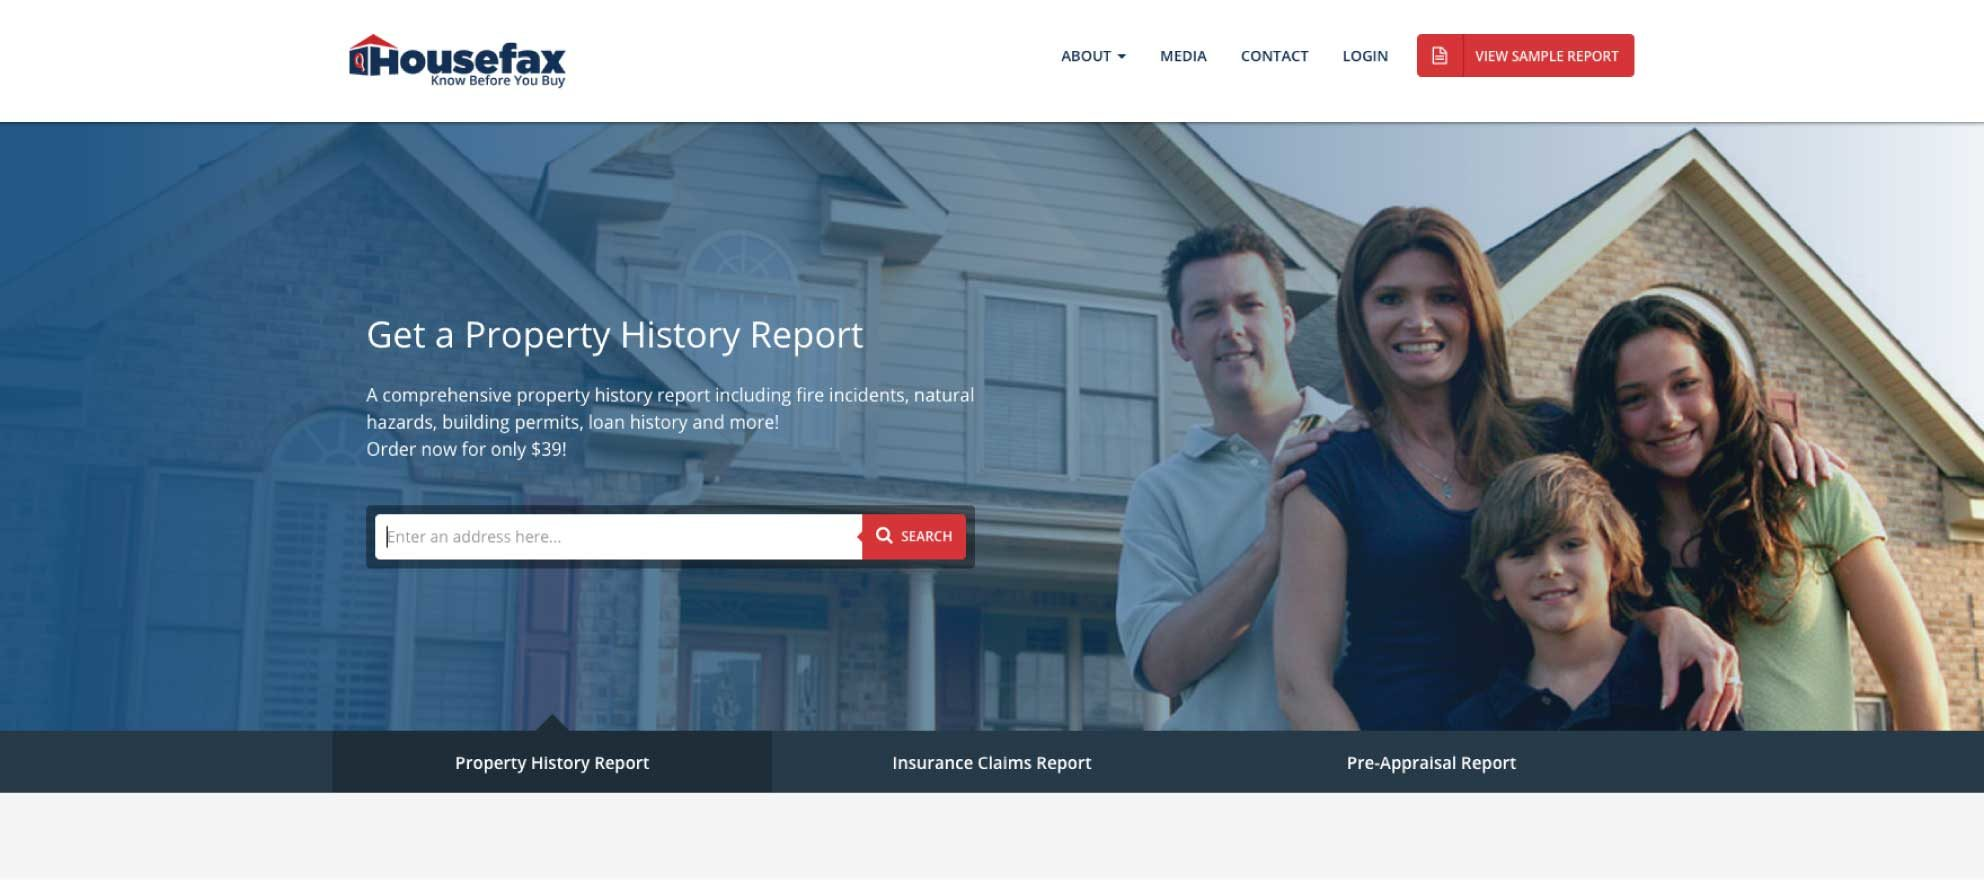 100,000 agents get single sign-on access to property history report tool